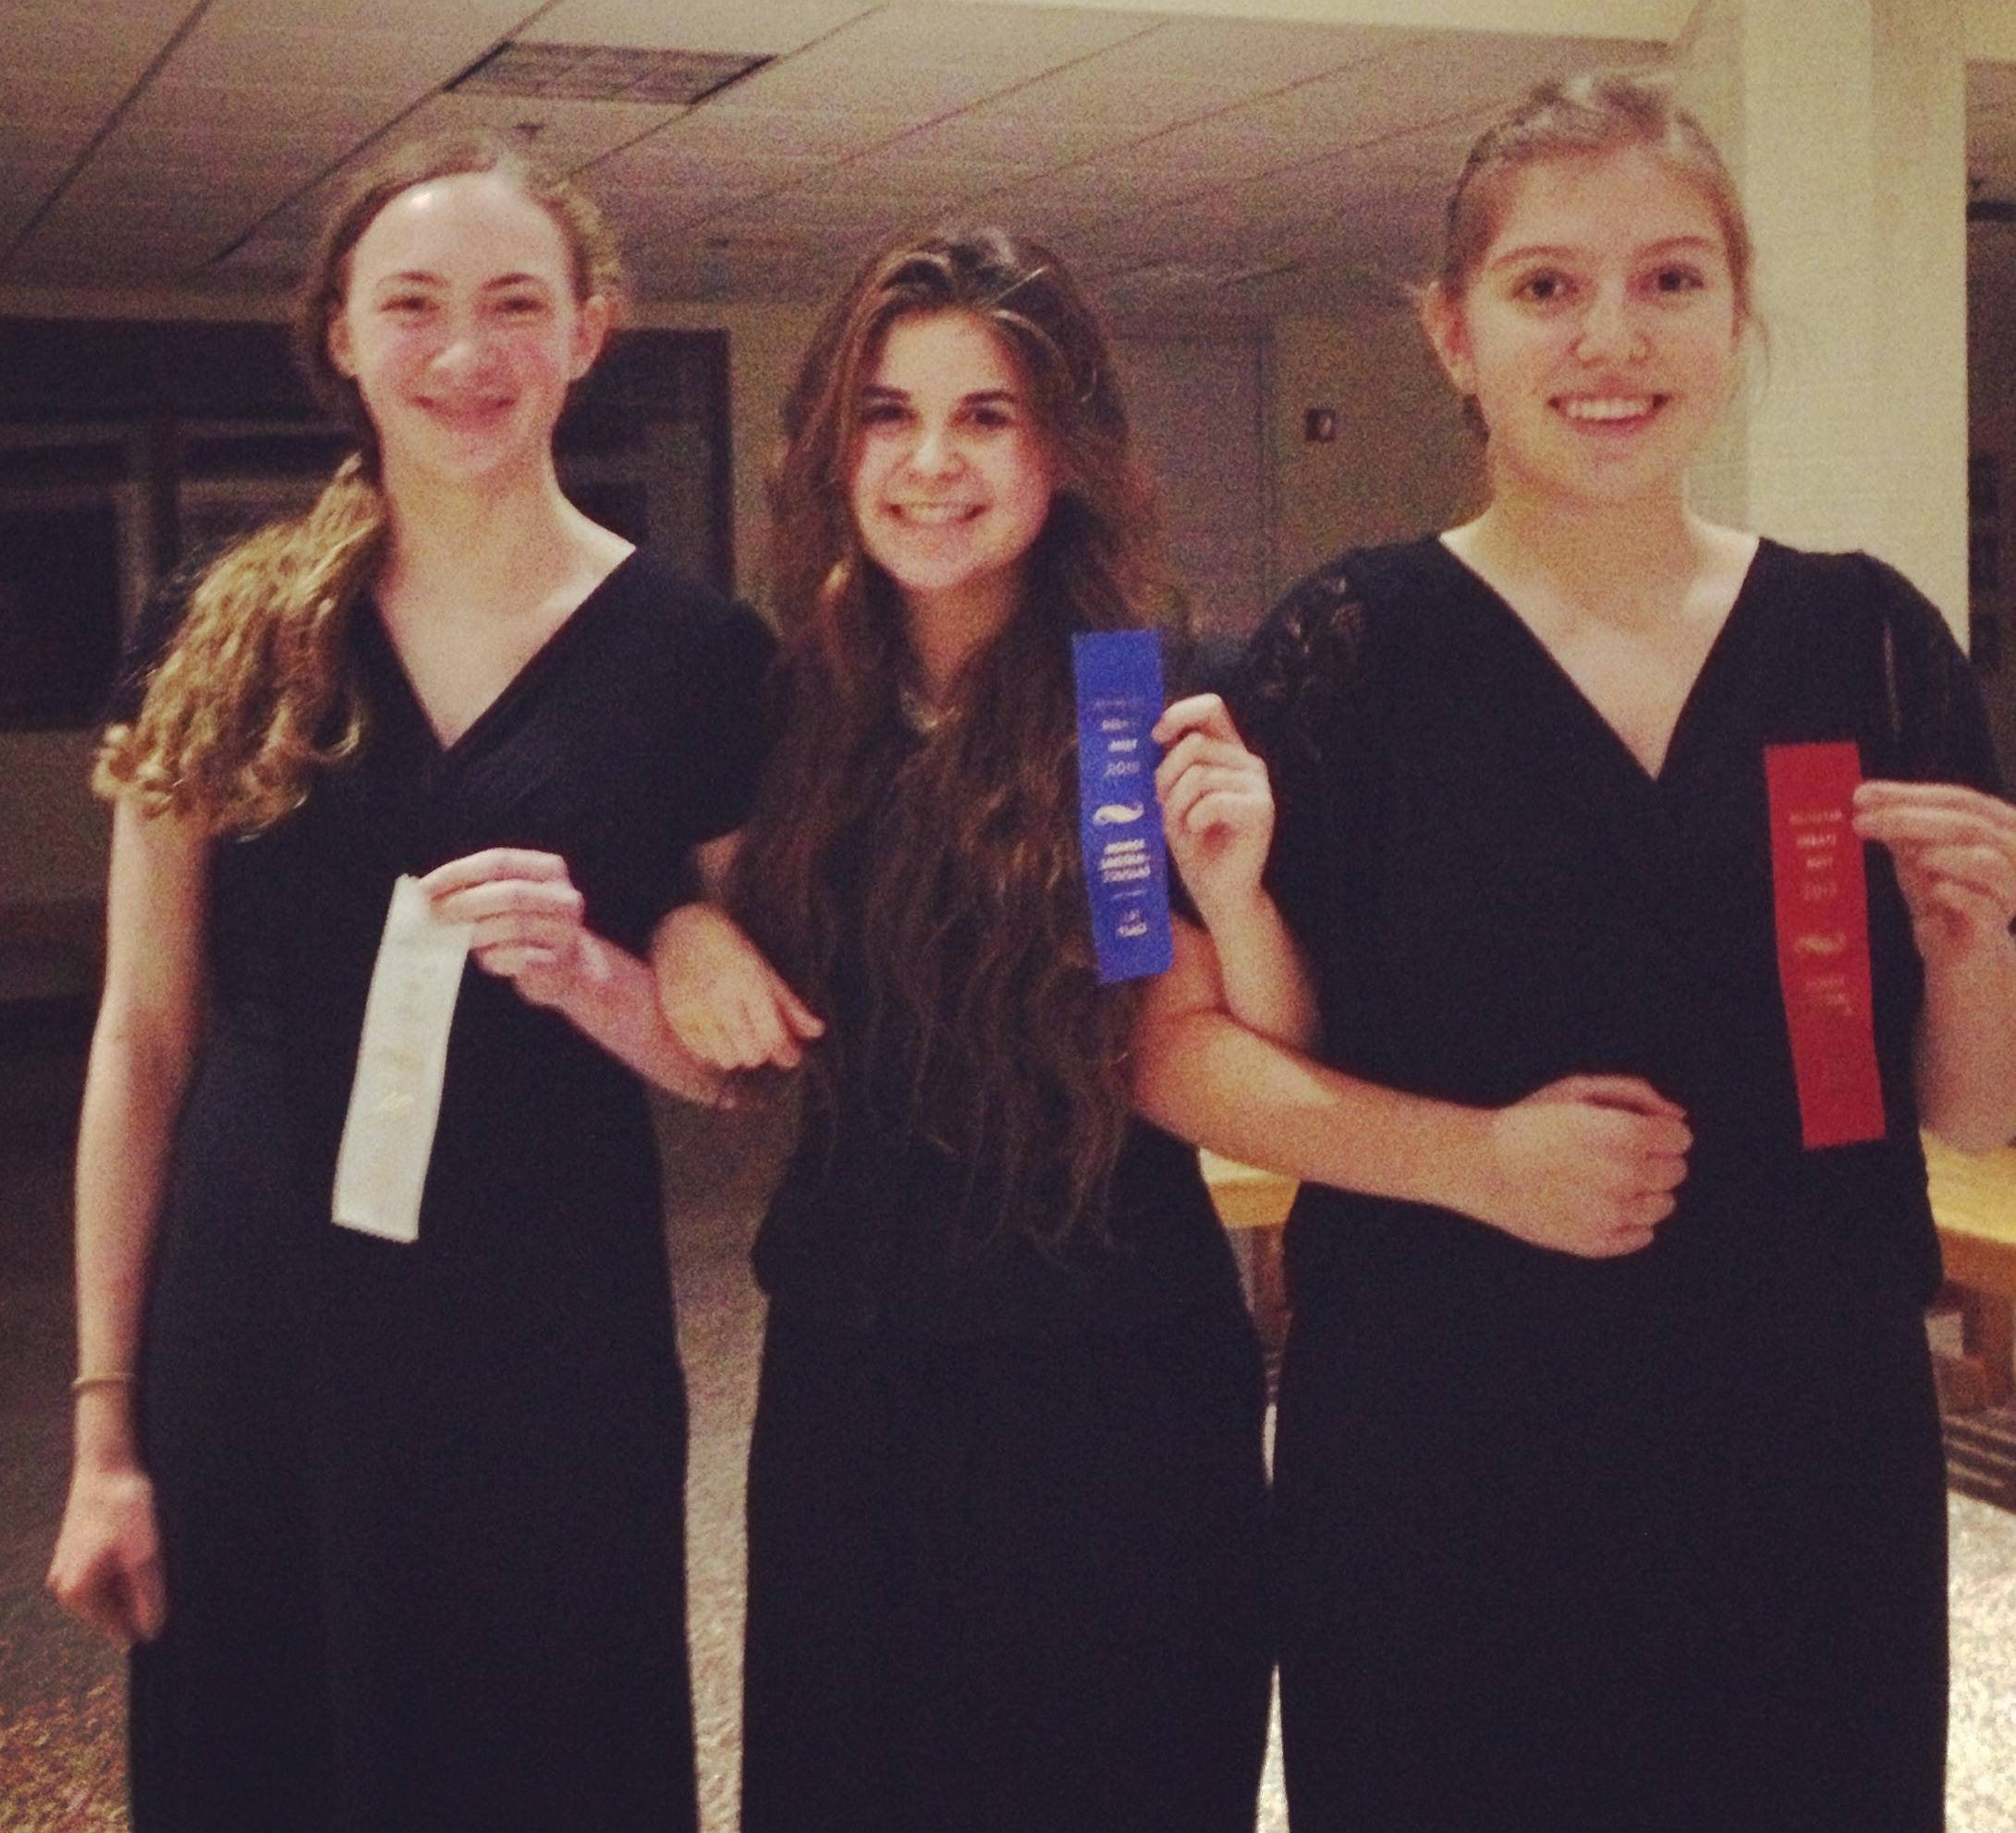 Woodlands Academy of the Sacred Heart sophomores Ellie Randolph of Lake Forest, Arminda Downey-Mavromatis of Gurnee and Elena Gutierrez of Waukegan (left to right) combined for a perfect 12-0 record en route to 1st, 2nd and 3rd place honors in the Lincoln-Douglas Novice Division at the 2013 Munster Open Debate Tournament in Munster, Ind. In addition, Downey-Mavromatis was named the Novice Division Tournament Champion.